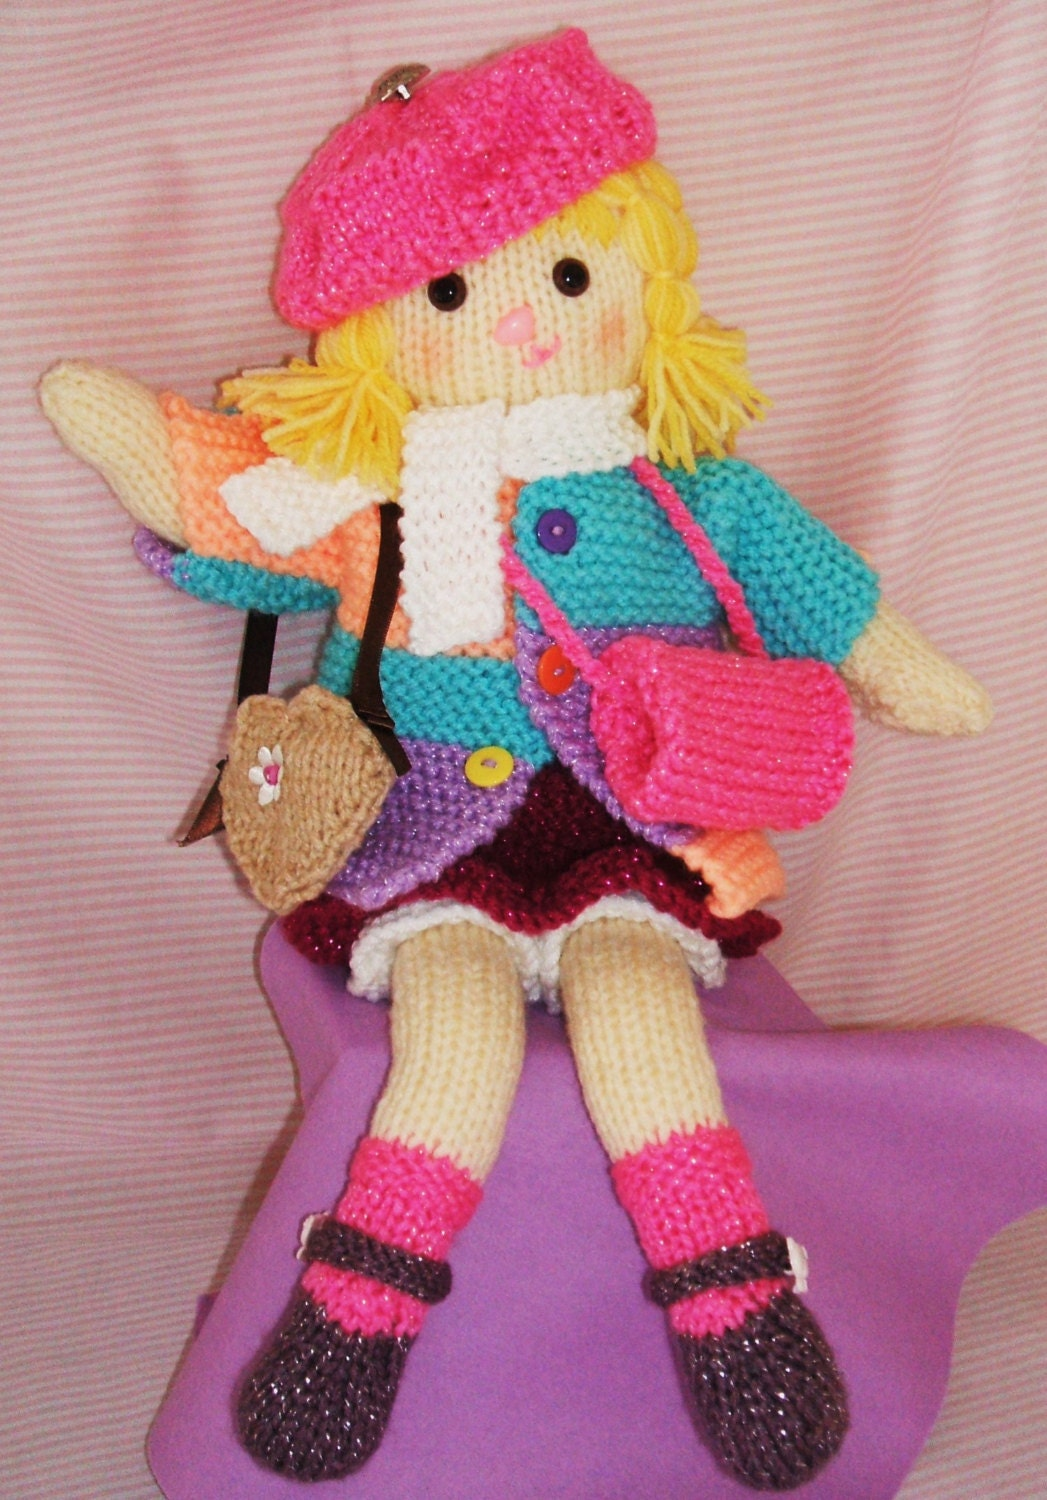 SALE! Dress Up Dolly knitting pattern